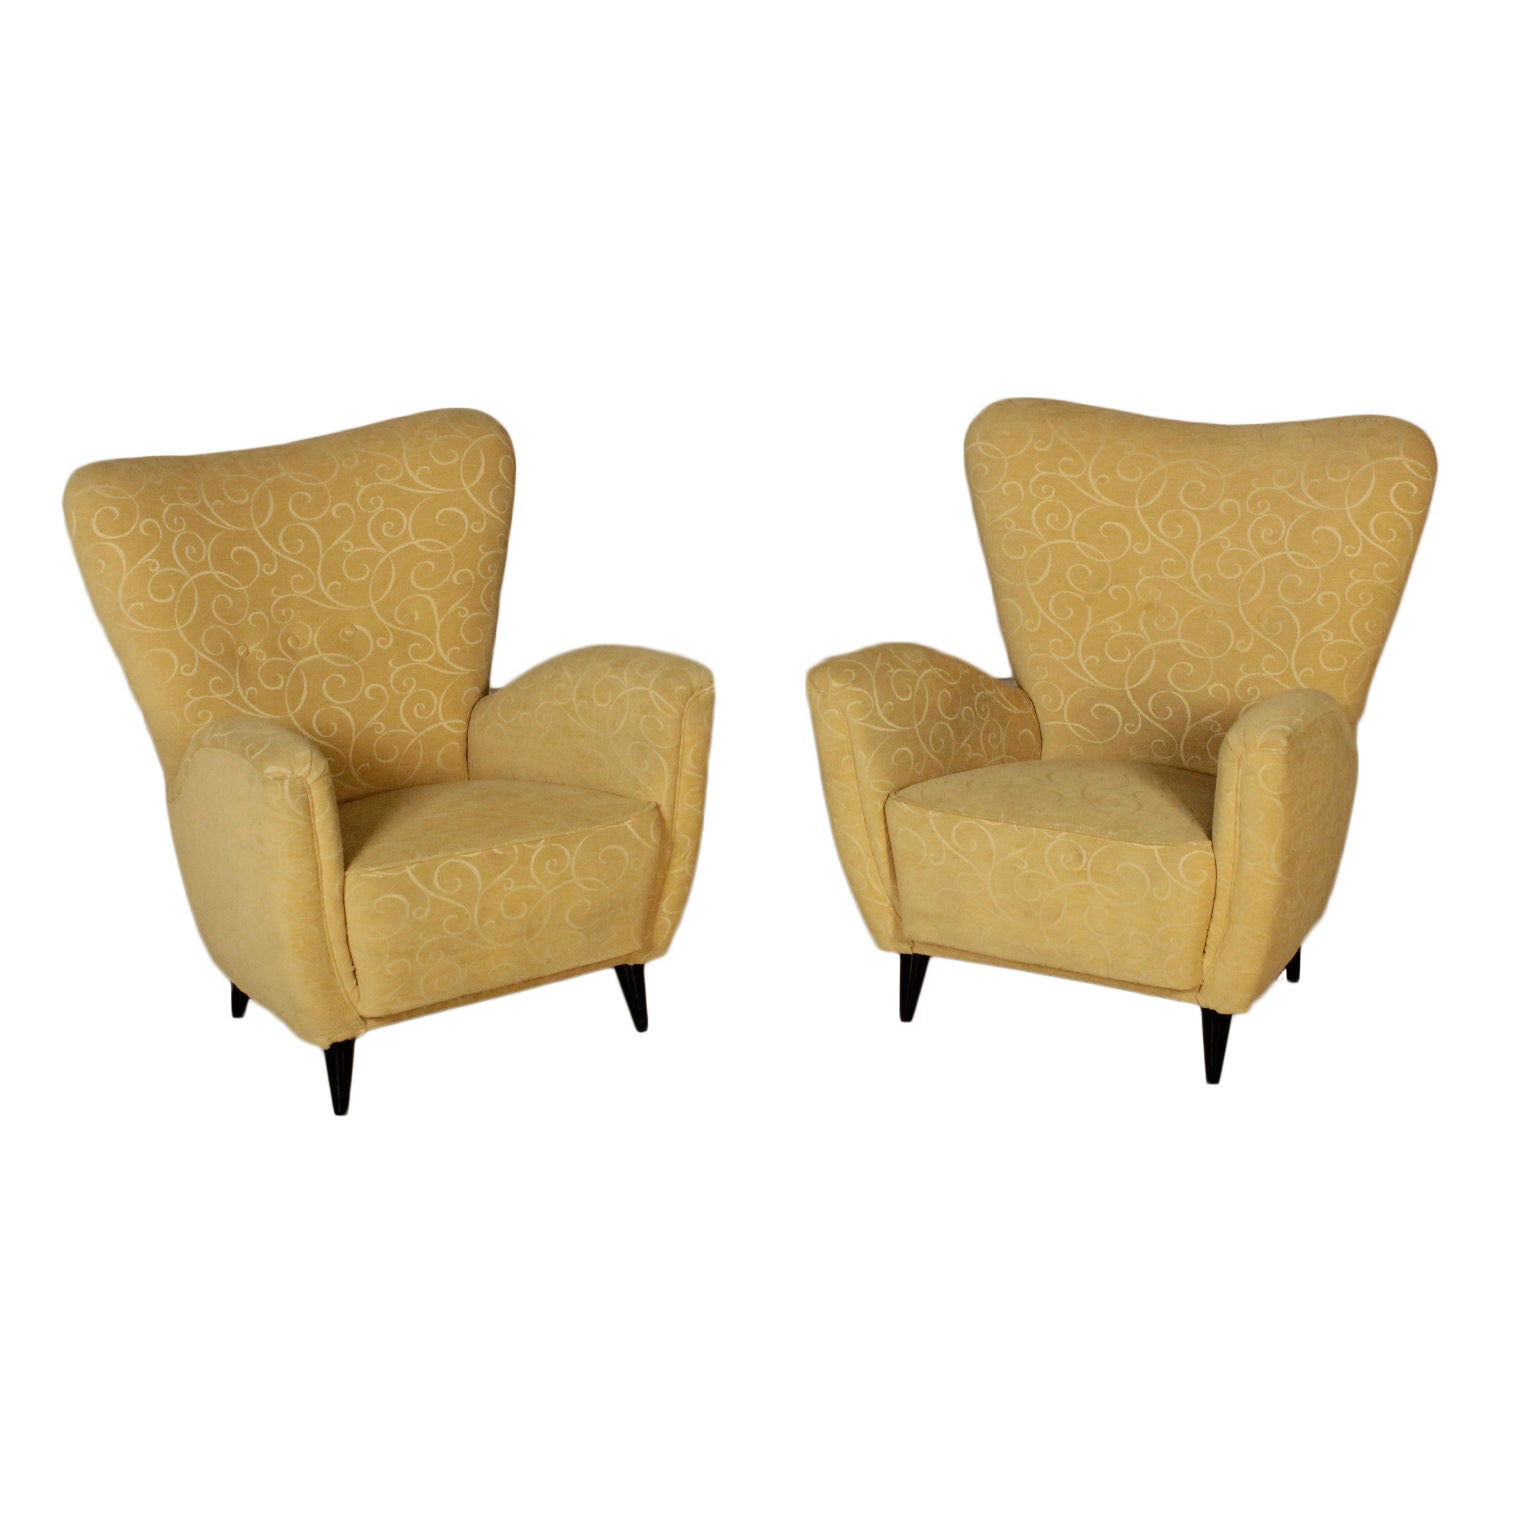 Pair Of Armchairs Fabric Upholstery Stained Wood Vintage Italy